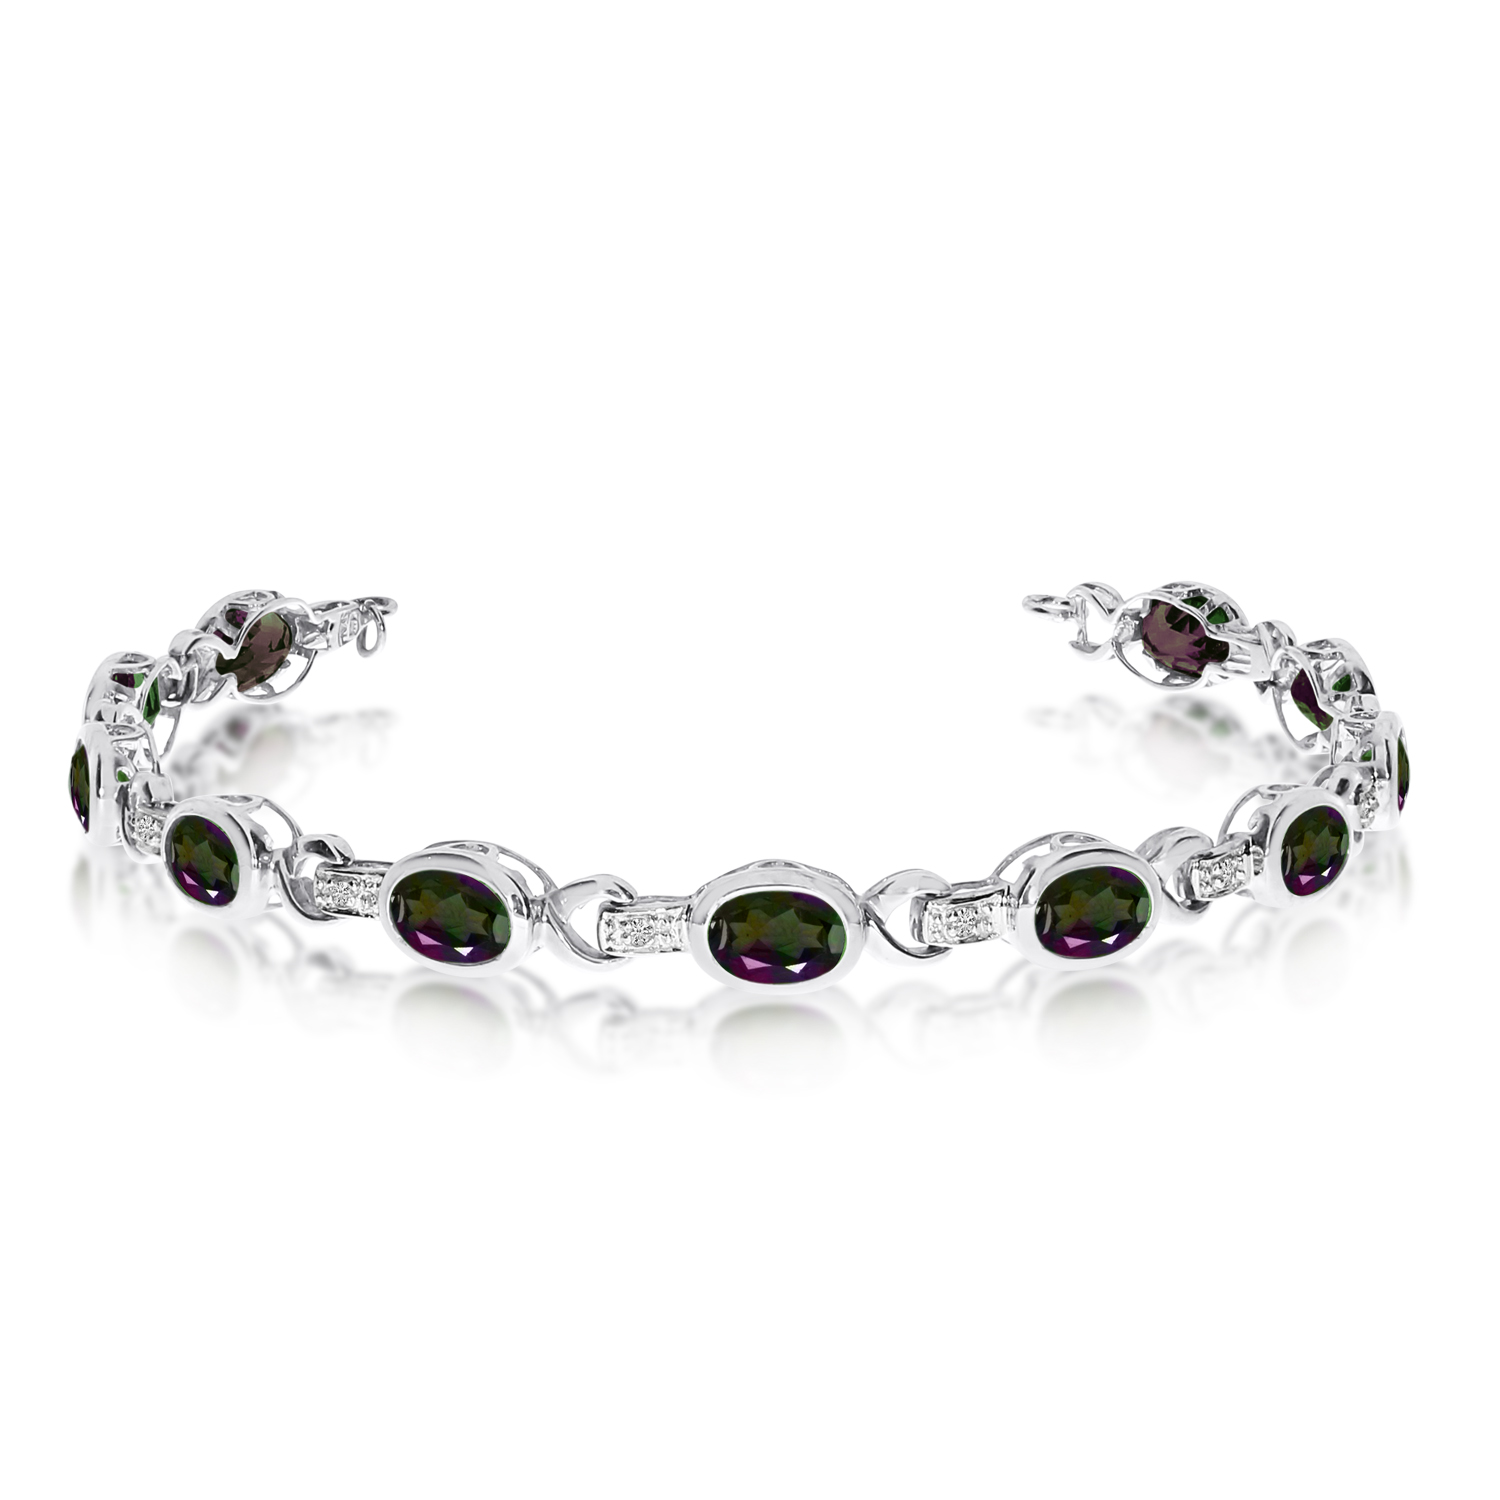 Oval Mystic Topaz and Diamond Link Bracelet 14k White Gold (9.62ctw)